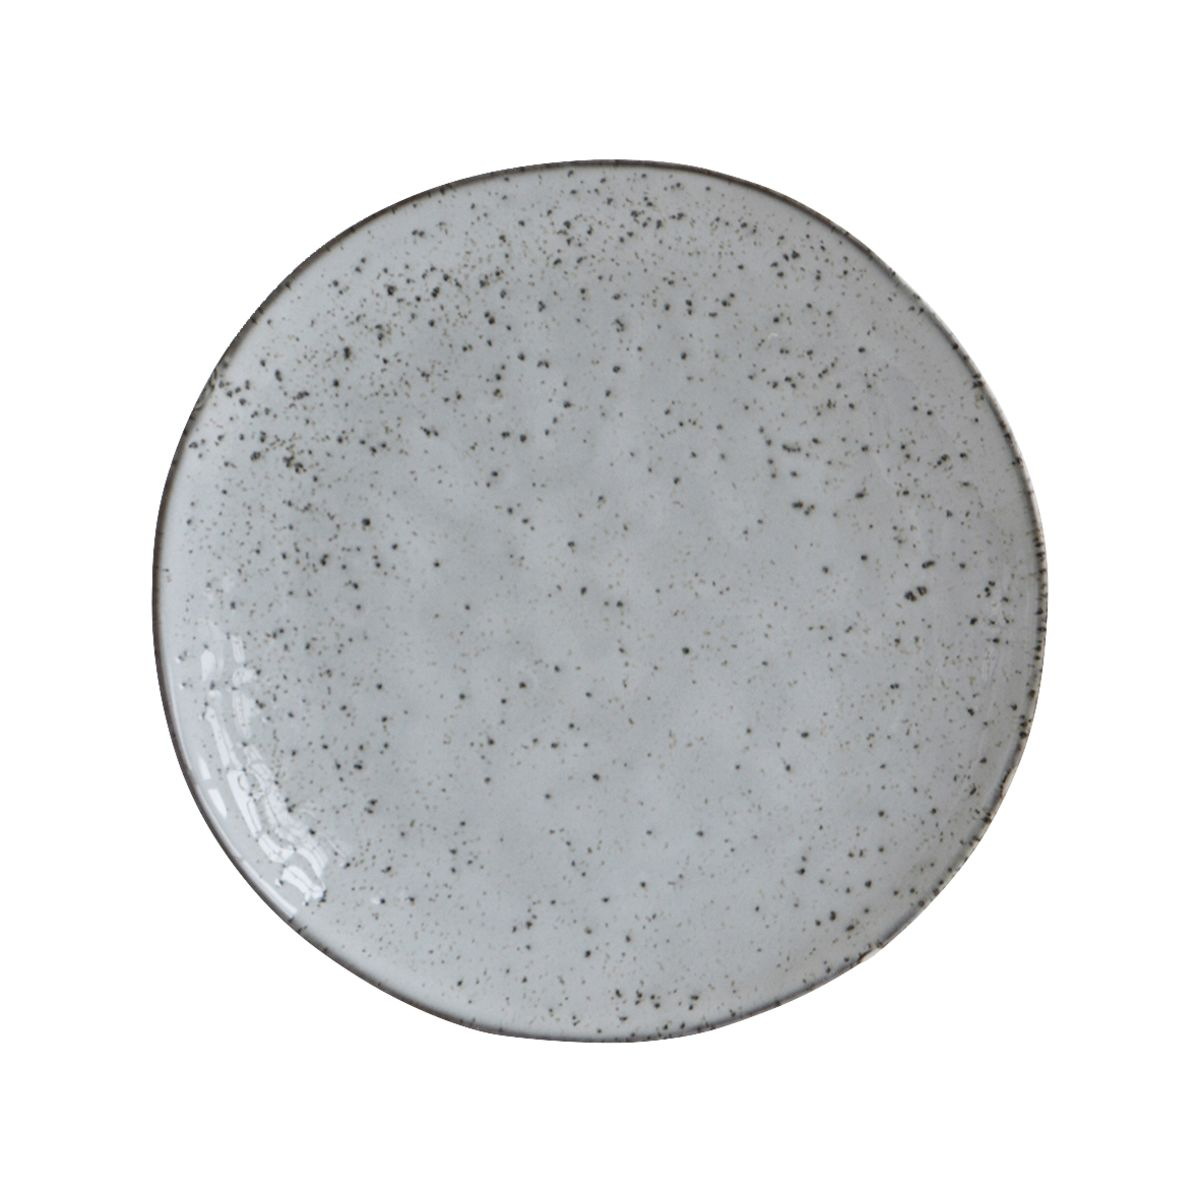 House Doctor - Rustic Plate 20,5 cm (Hc0801)